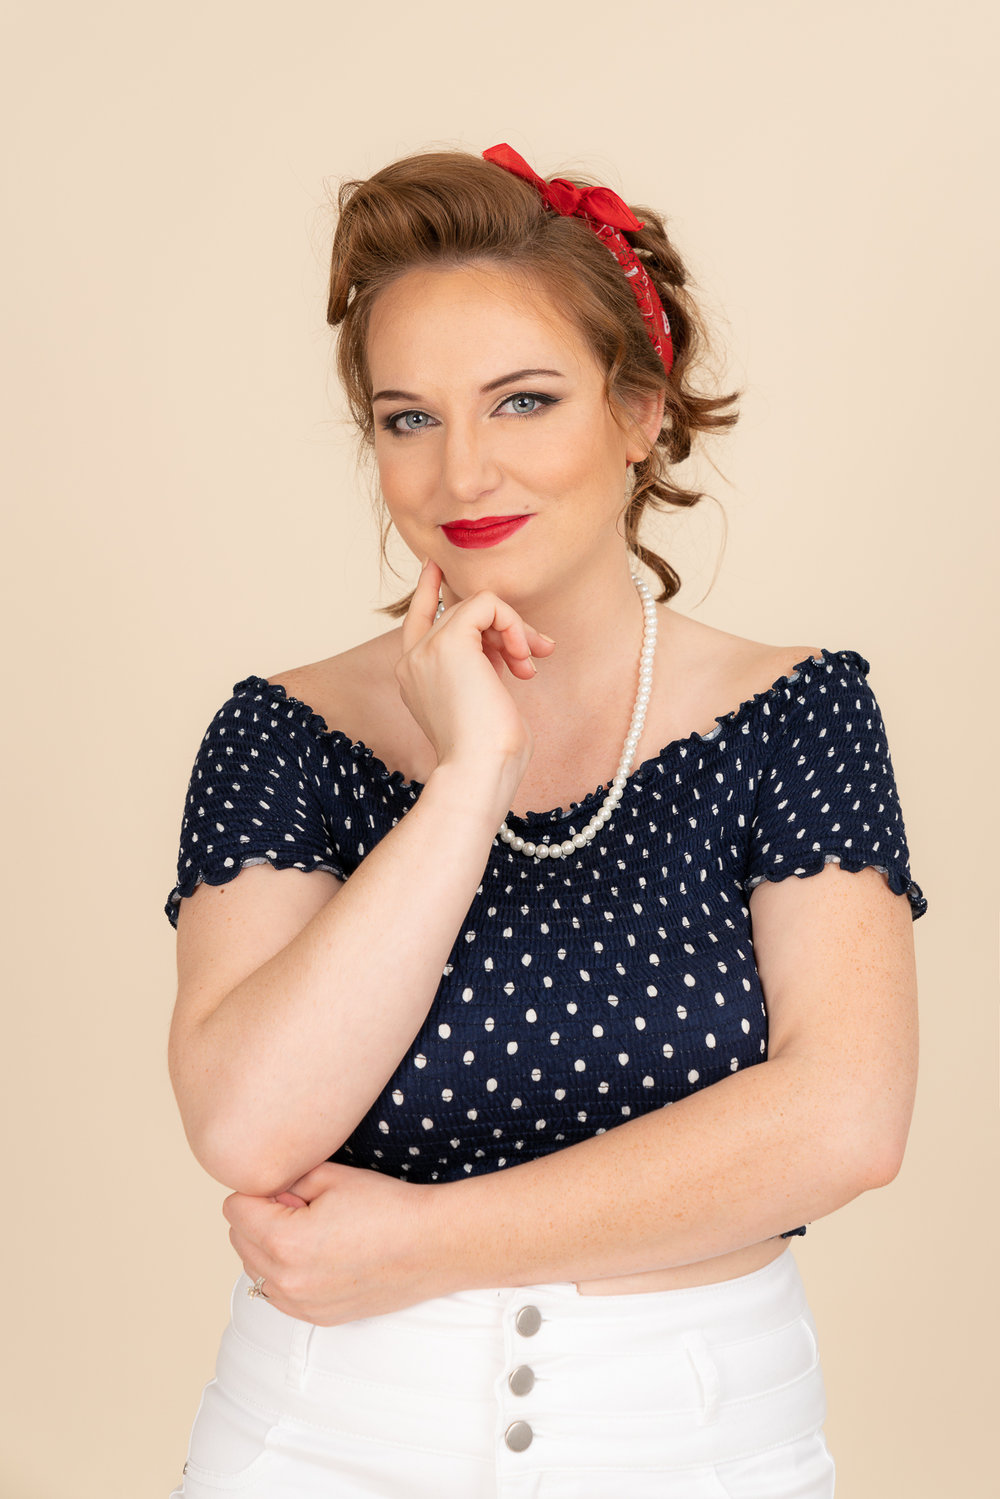 Pin-up themed Portrait Session of one of our Brides that she did as a surprise gift for her husband-to-be!